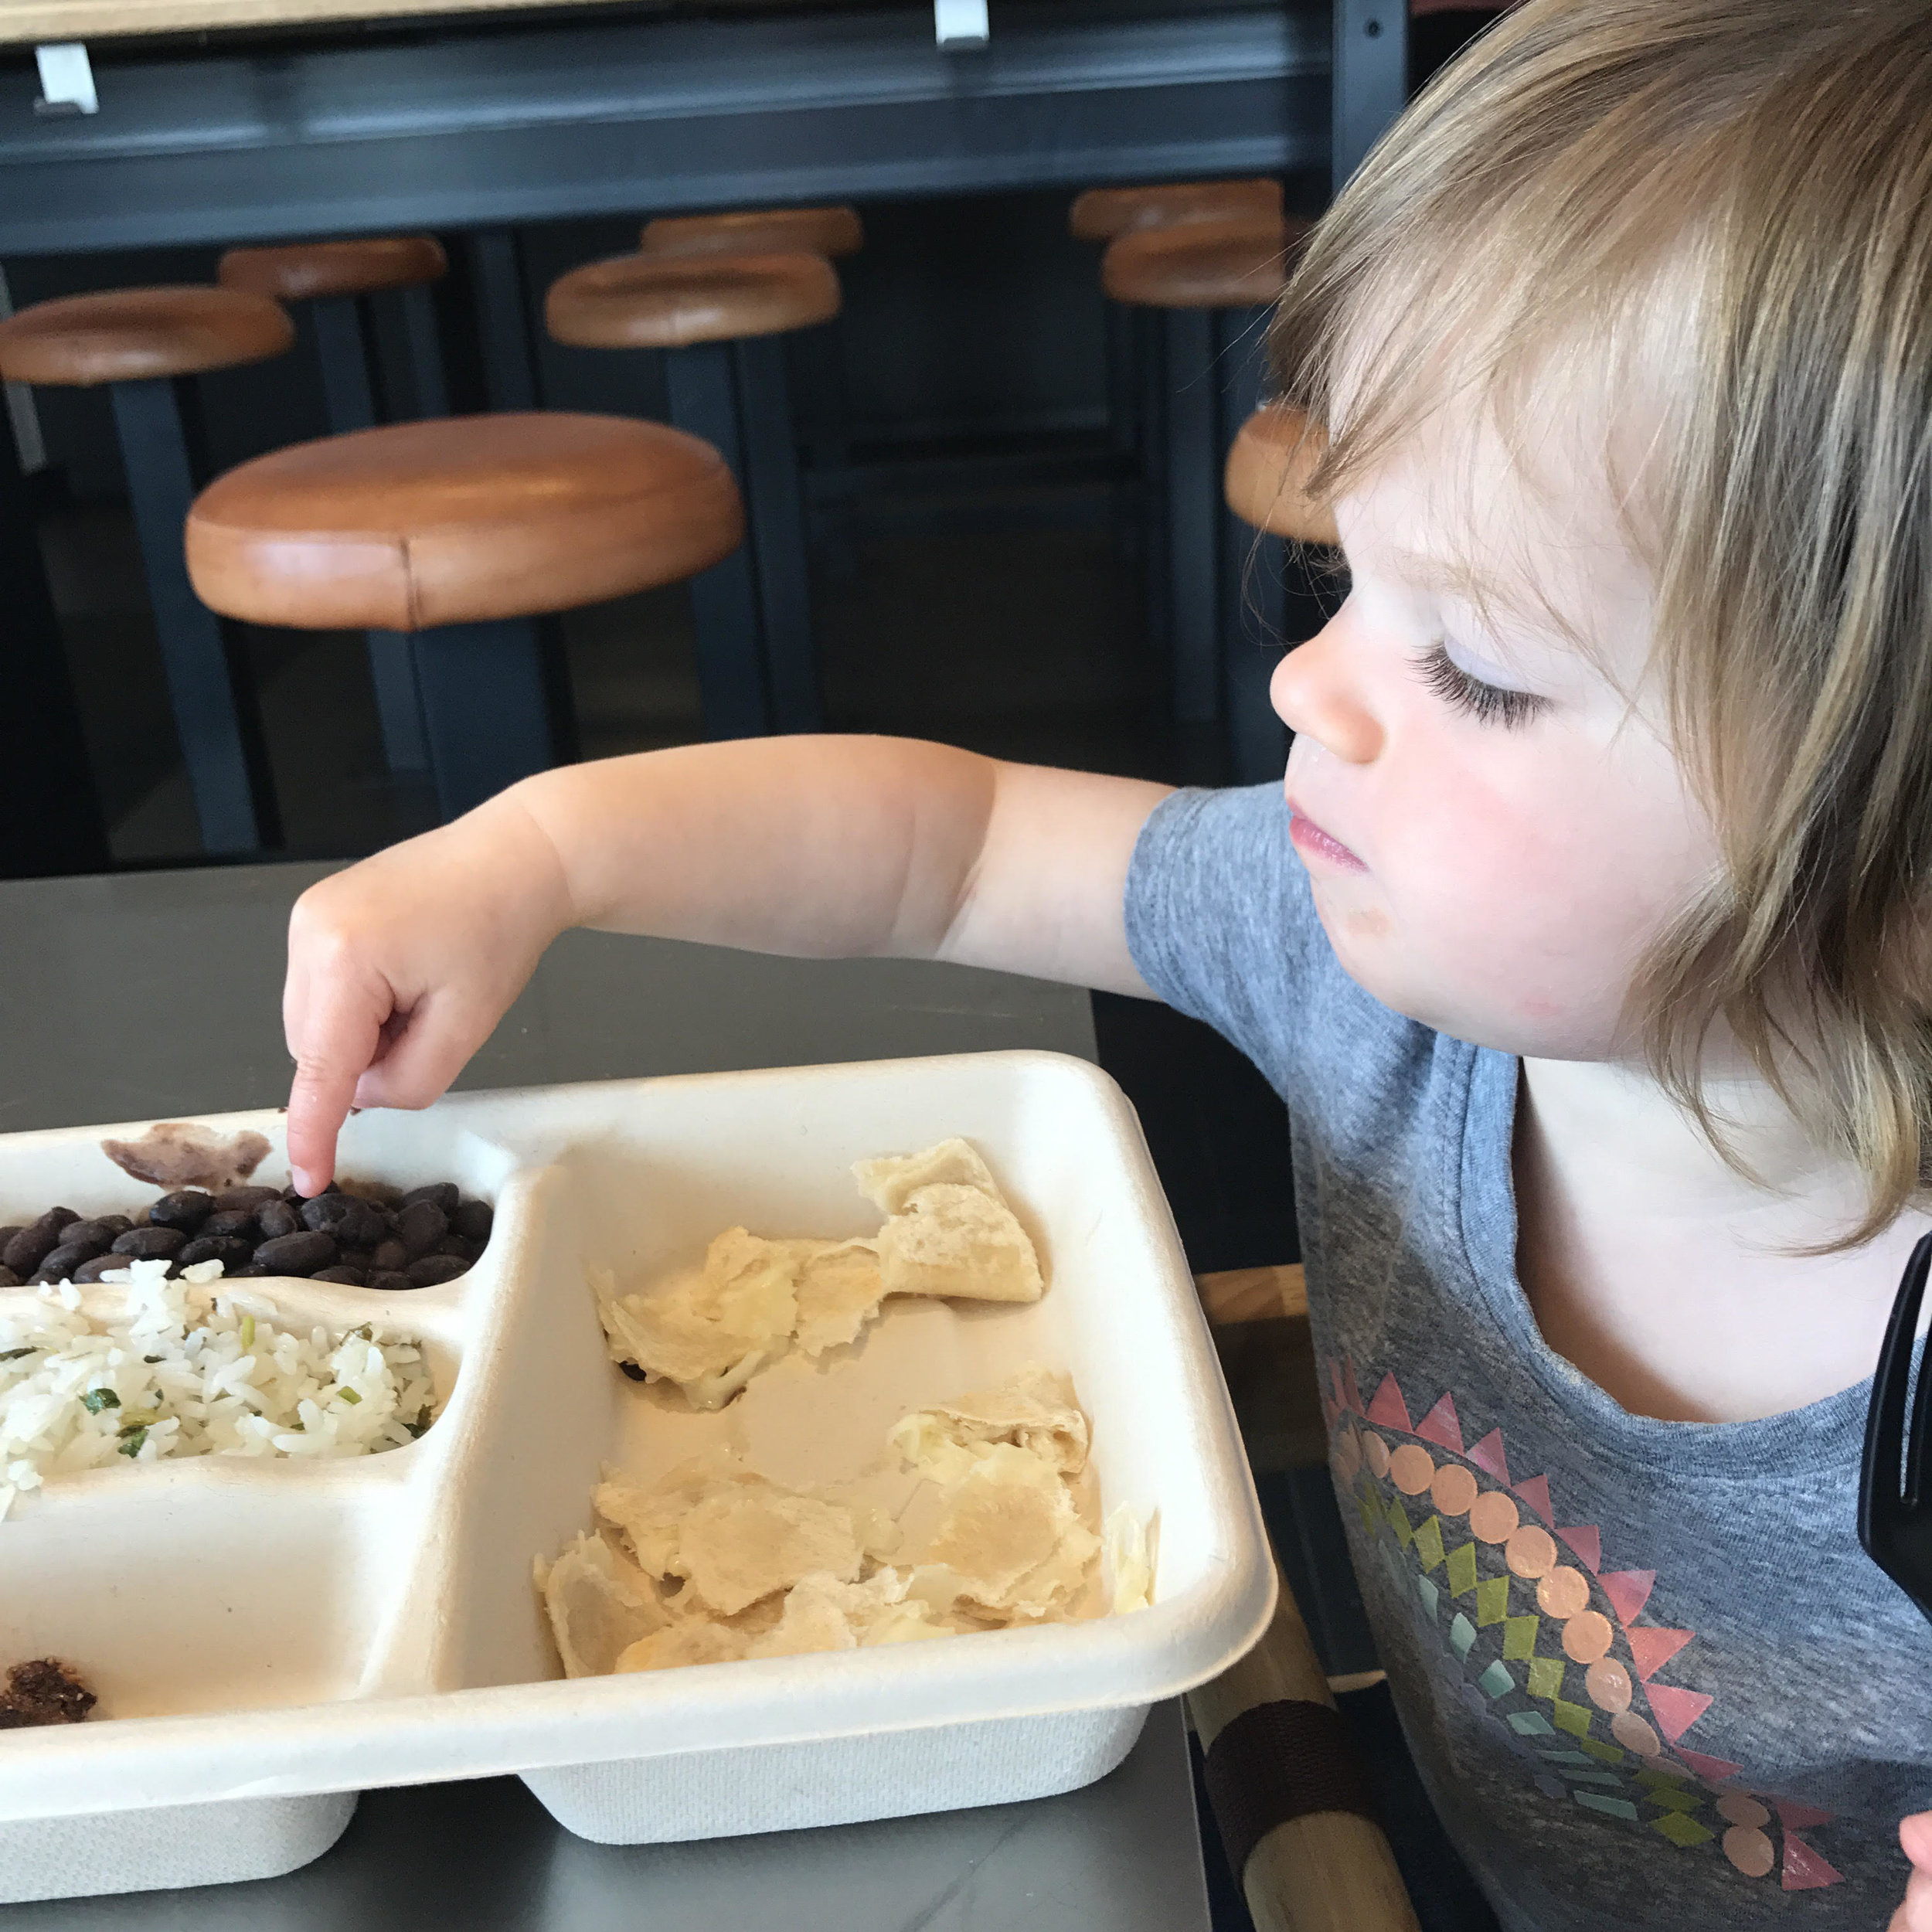 One thing I know Ava will always eat... Chipotle!